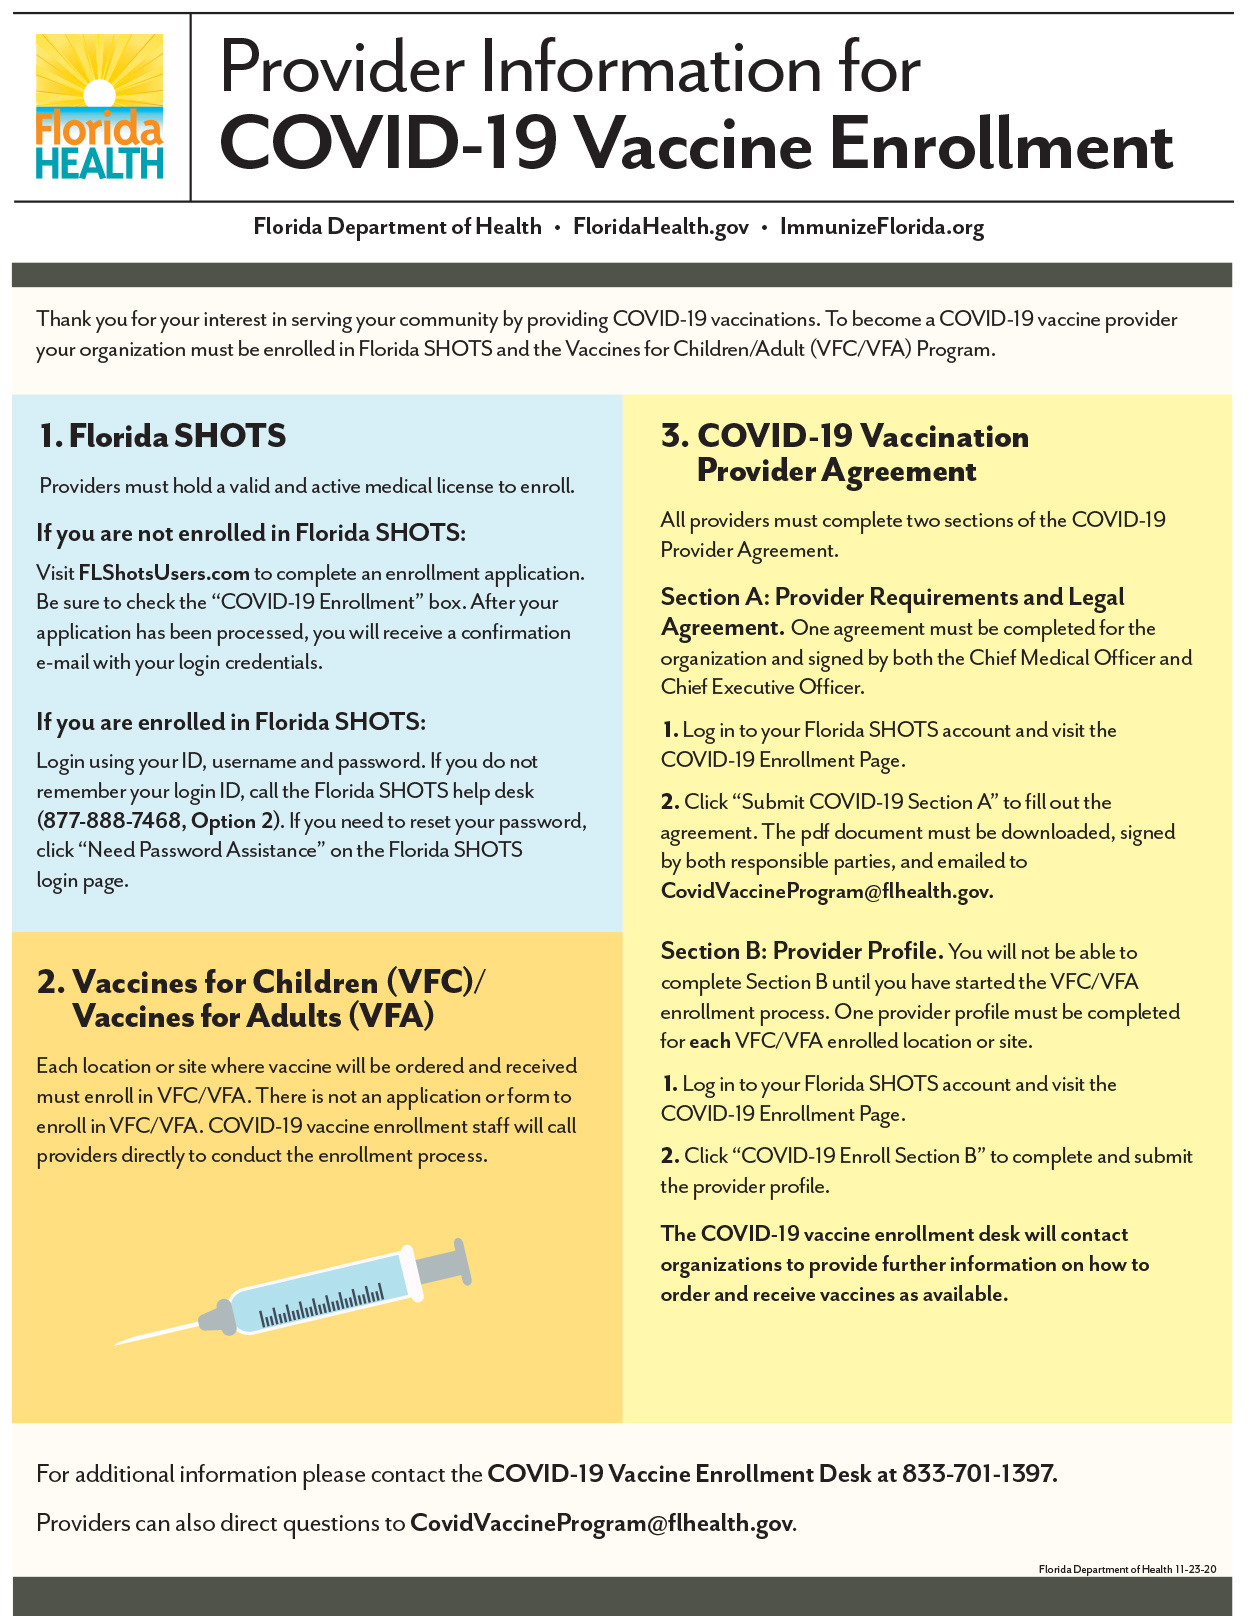 Provider Information for COVID-19 Vaccine Enrollment - FloridaDepartmentofHealth